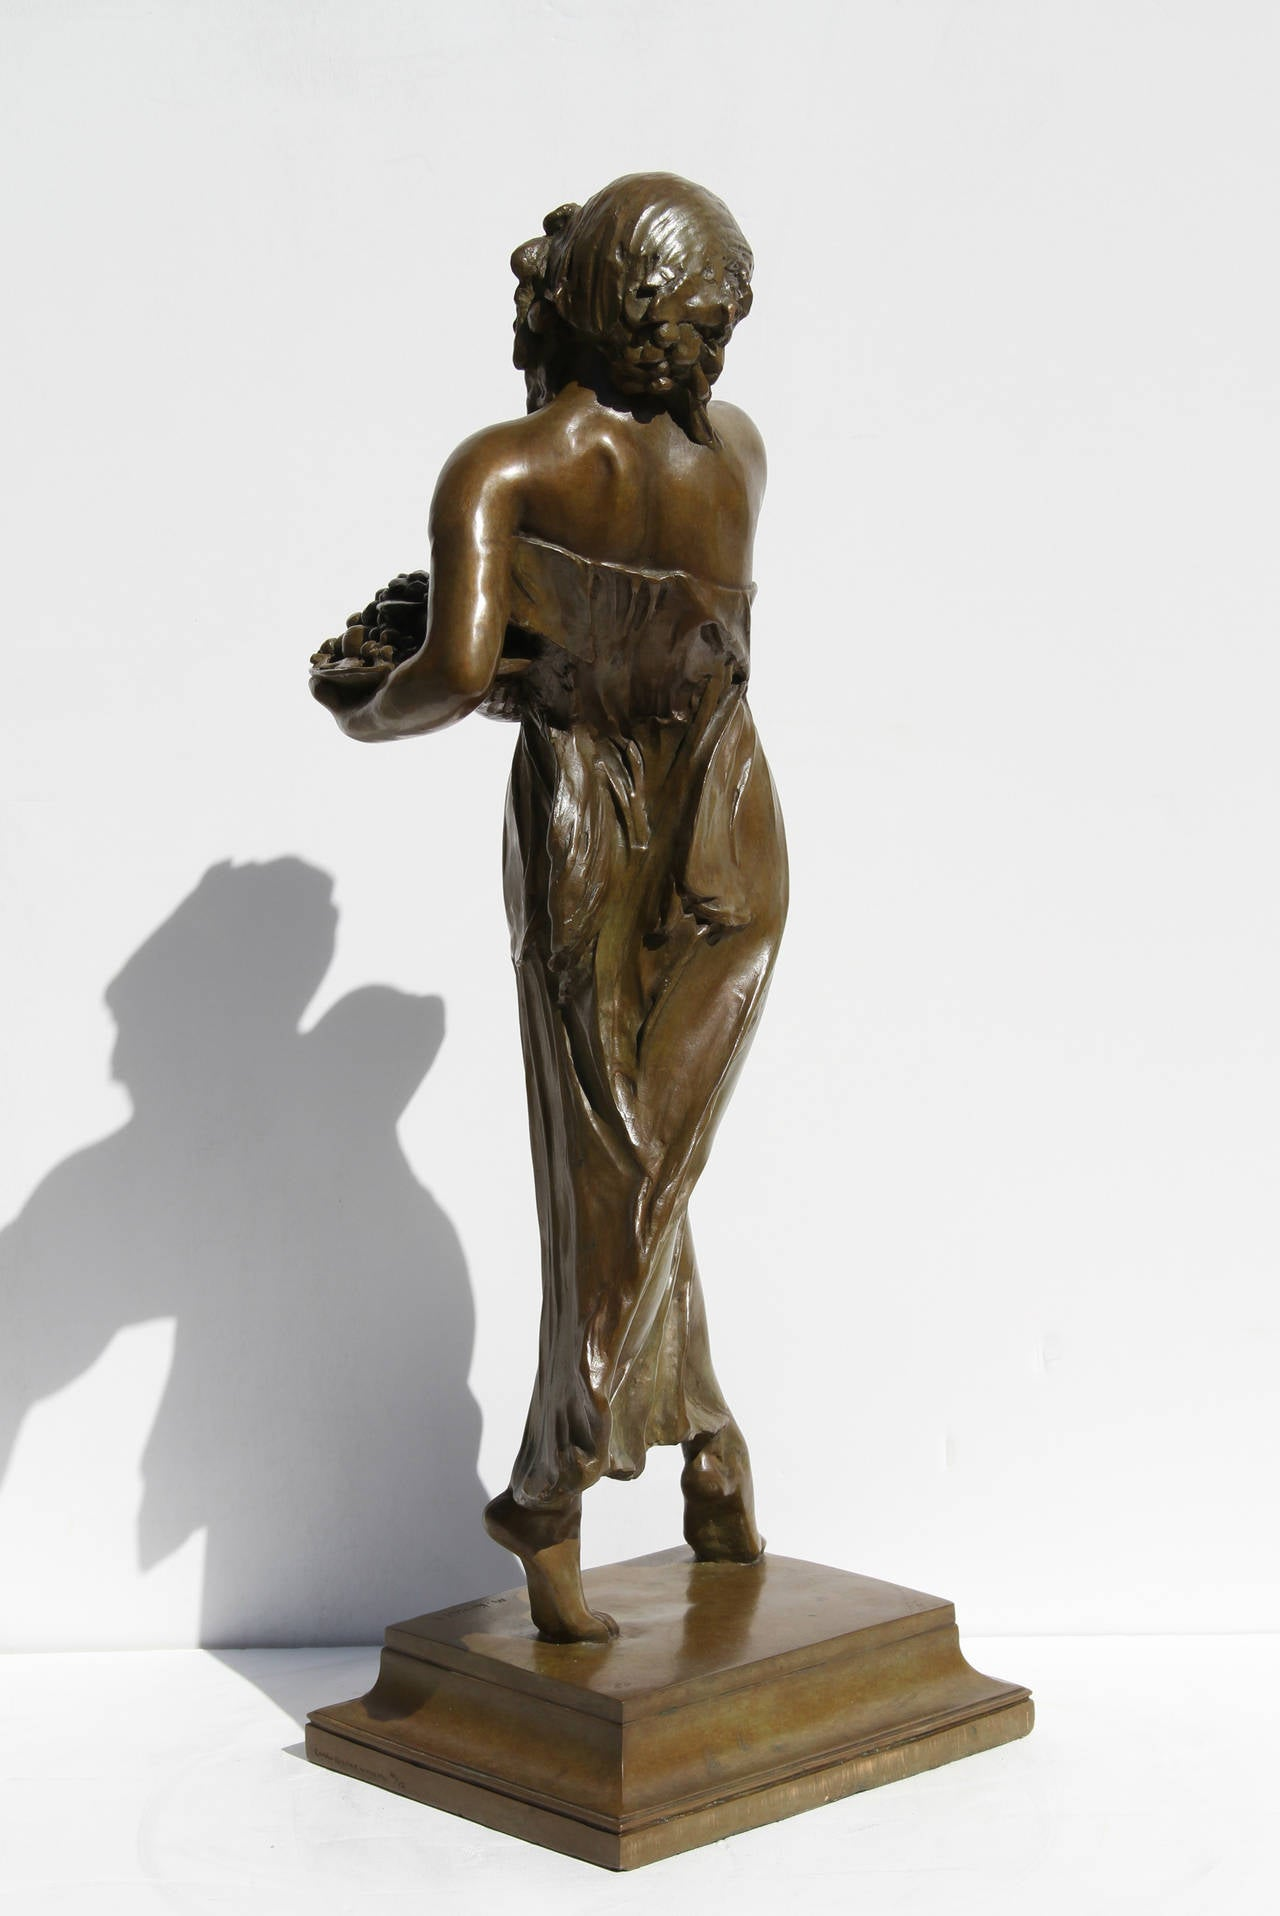 Woman Carrying Grapes - Gold Figurative Sculpture by Mario Joseph Korbel